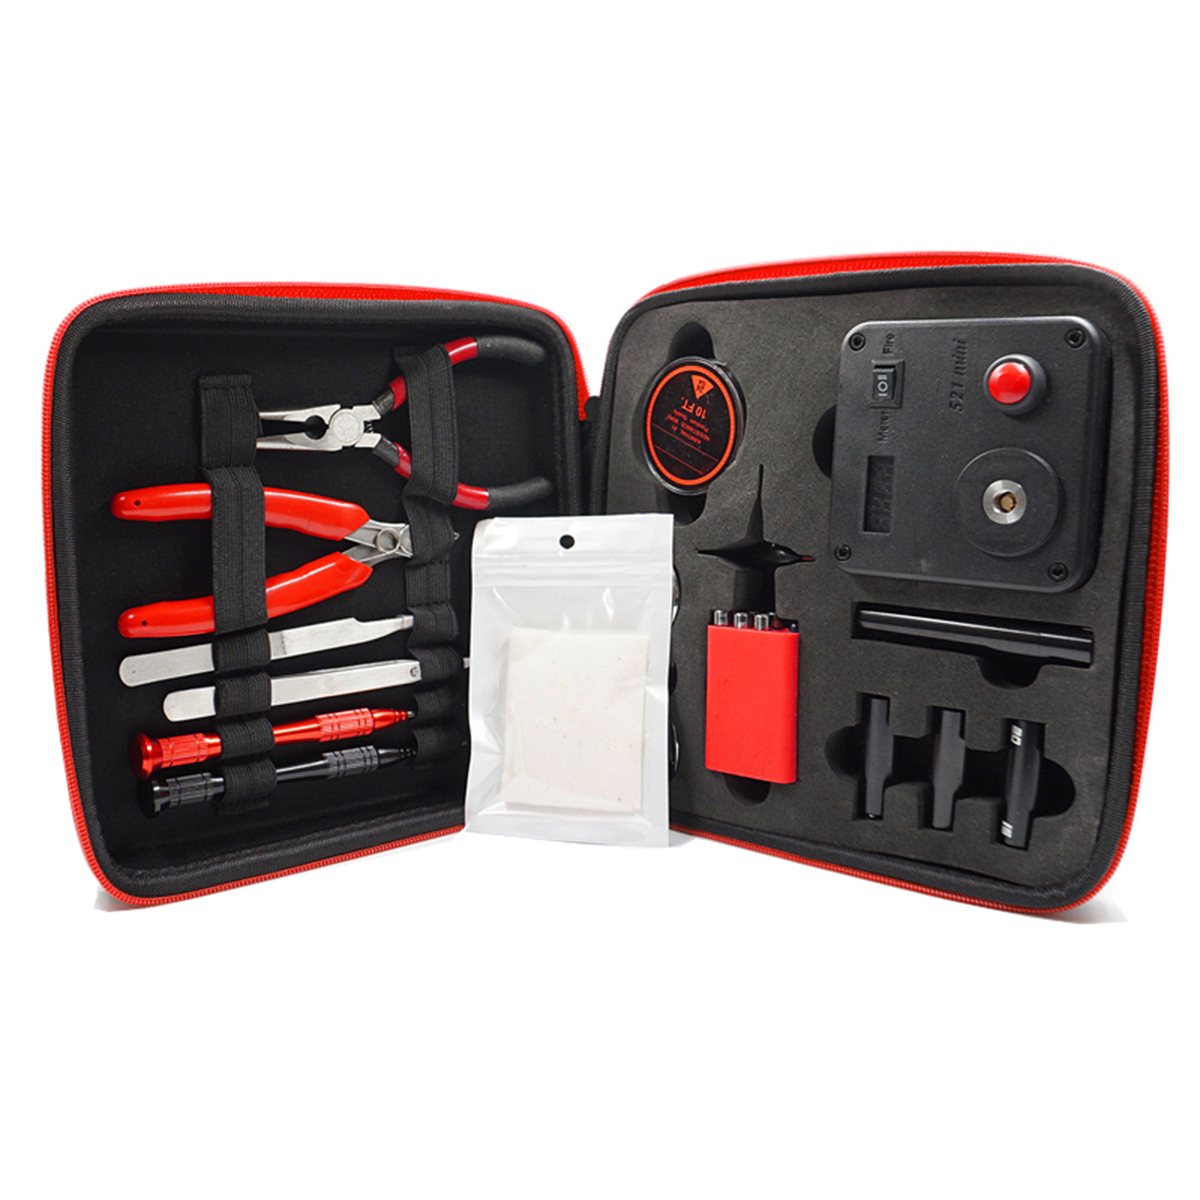 Update Coil Master V3 DIY Kit All in One CoilMaster V3+ Electronic Cigarette RDA Atomizer coil tool bag Accessories Vape vaper 5